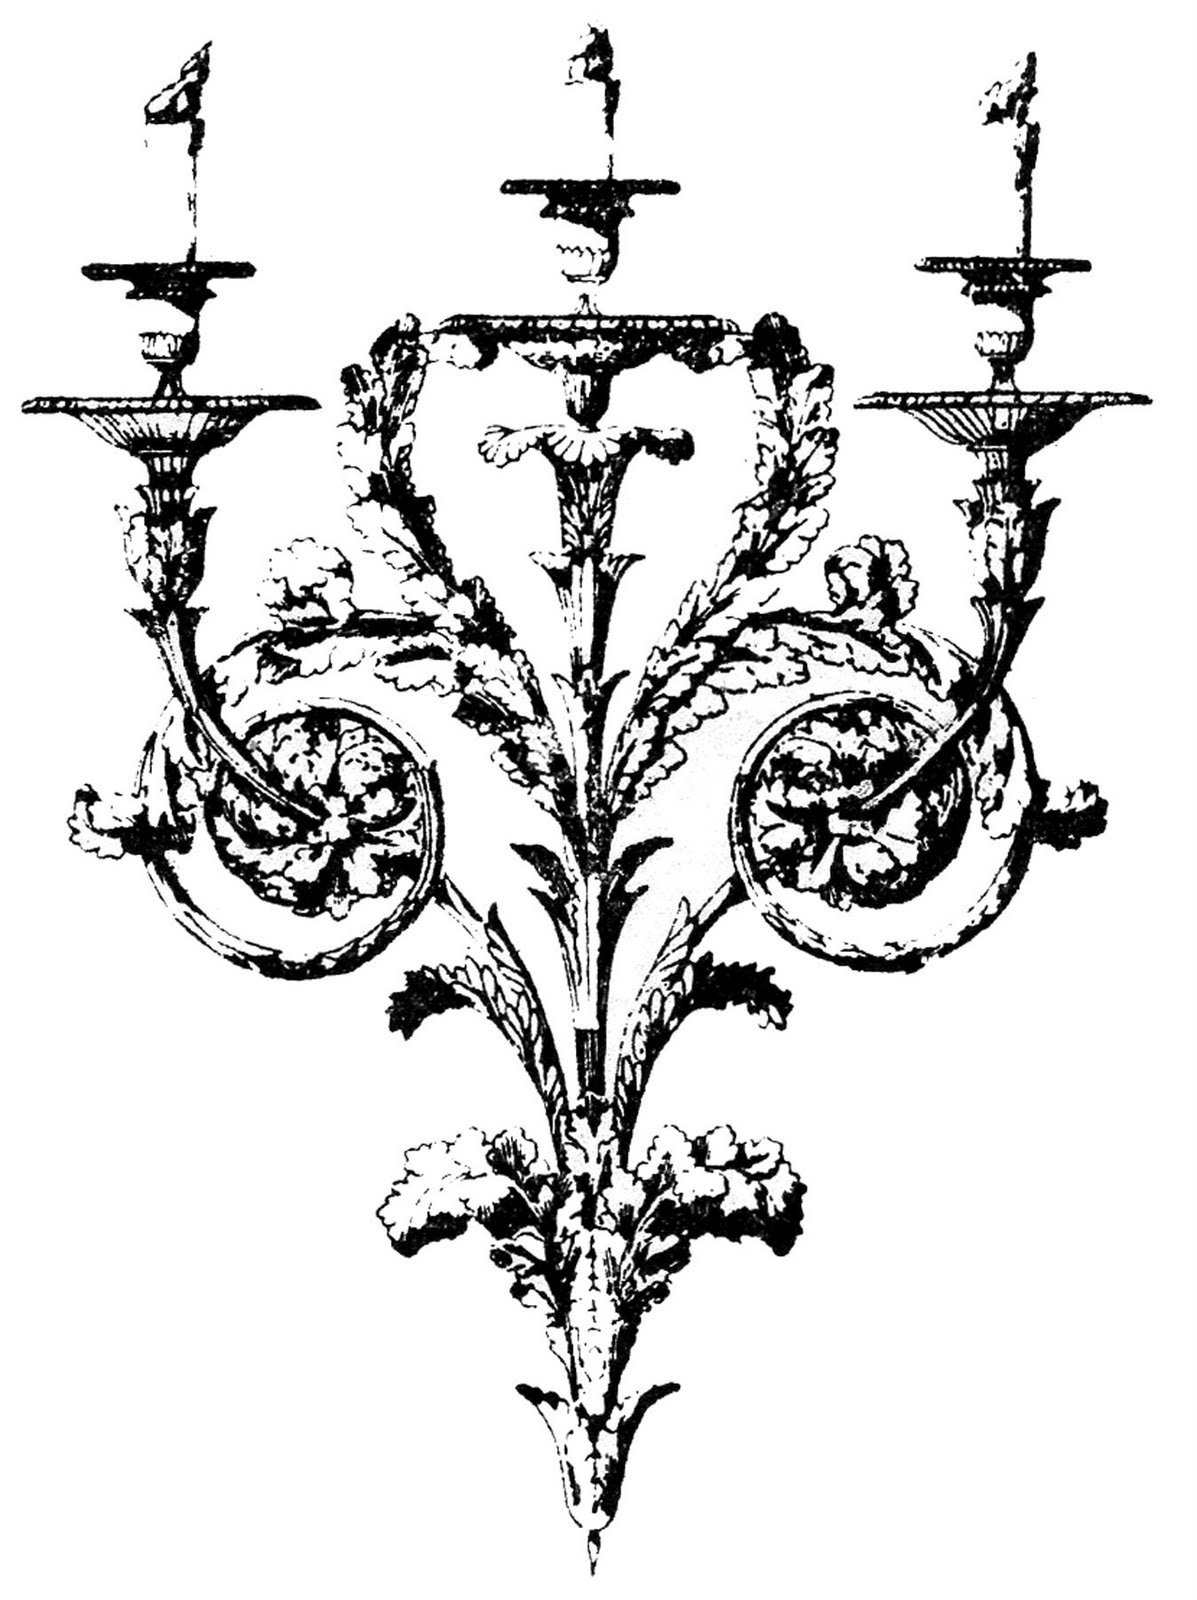 Gothic halloween clipart graphic royalty free library Vintage Clip Art - Gothic Baroque Candle Holders - The Graphics Fairy graphic royalty free library